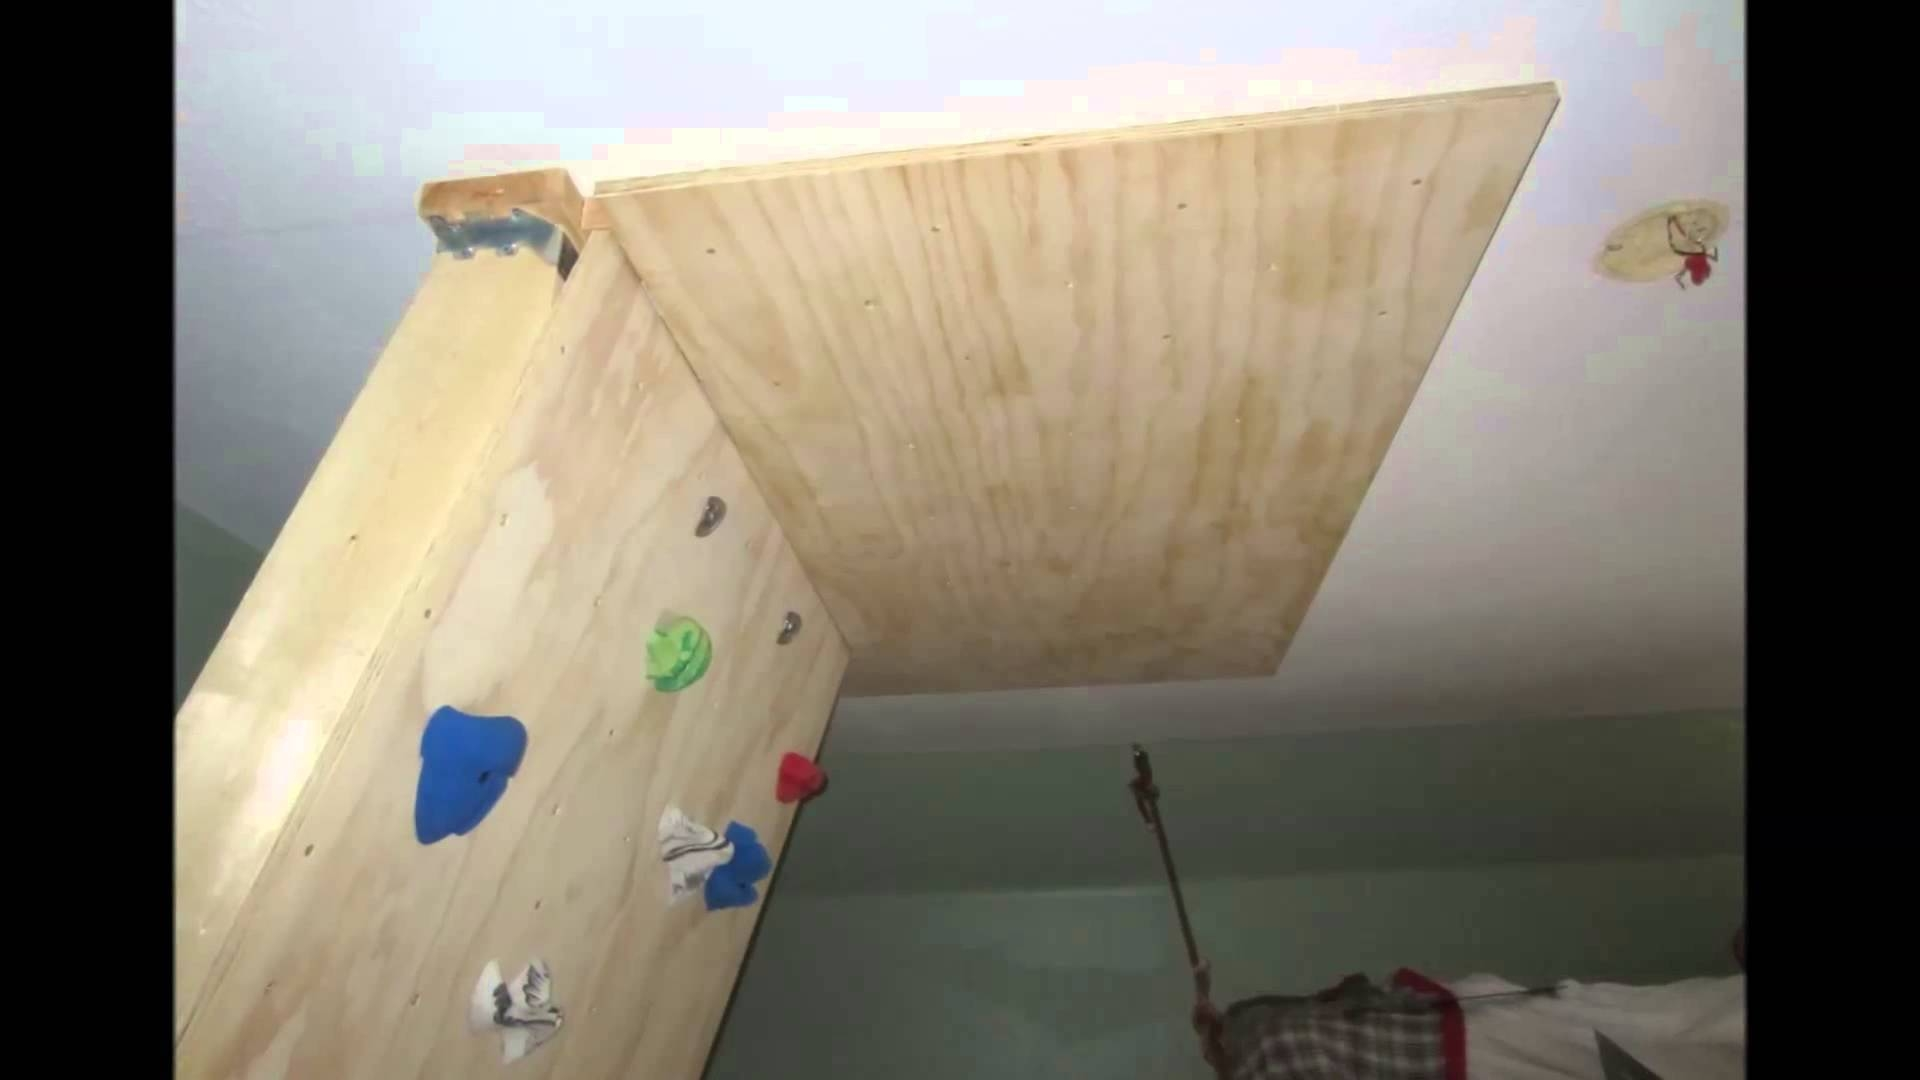 Diy Home Bouldering Wall Youtube – Dma Homes | #23689 Within Newest Home Bouldering Wall Design (View 10 of 20)